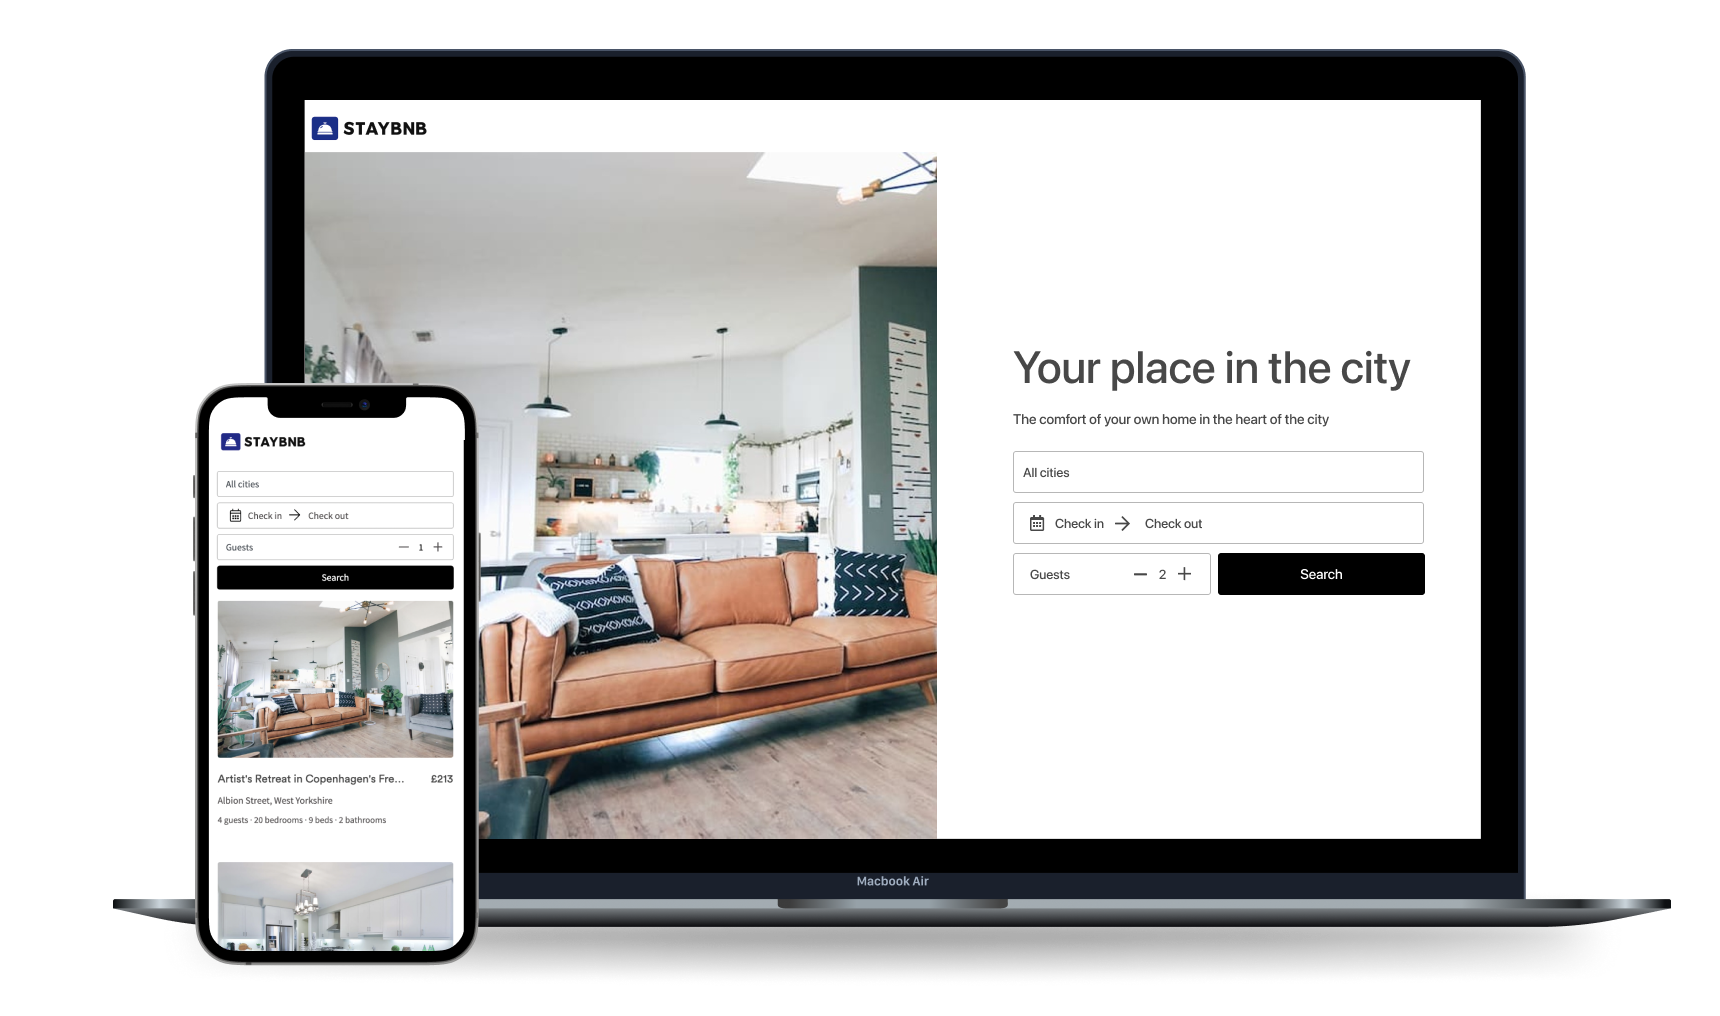 How to accept direct bookings from your short-term rental website